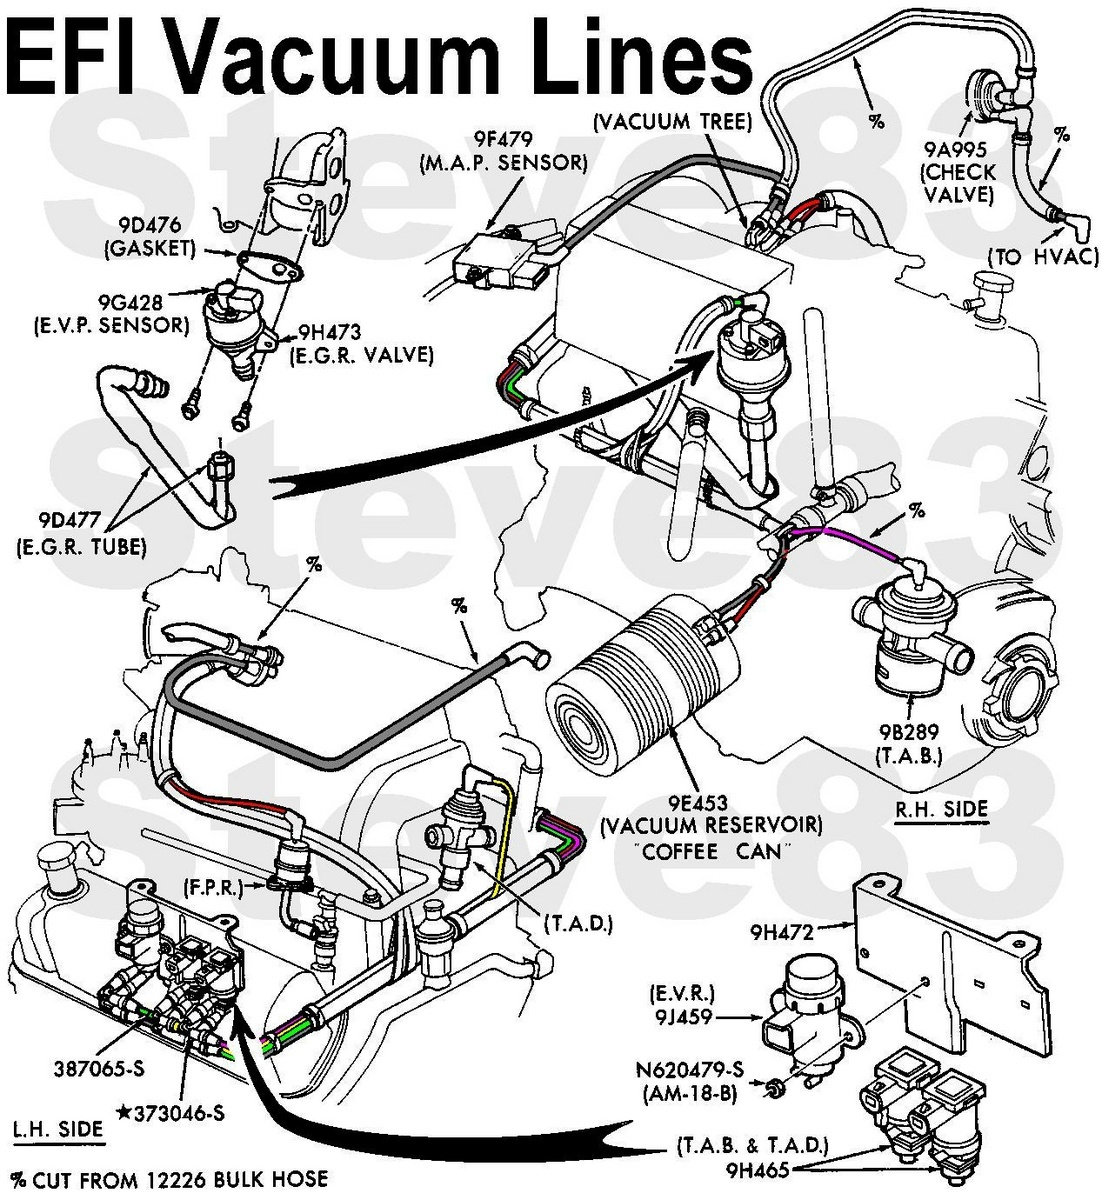 1997 jeep wrangler wiring diagram pdf with 93 Mustang 5 0 Engine Diagram on 2004 Dodge Durango Fuse Box Diagram further Oil Pressure Sending Unit Location 90996 furthermore RepairGuideContent as well 1997 Ford Probe Wiring Diagram Harness also Mazda Protege Daytime Running Light Drl Wiring Diagram.